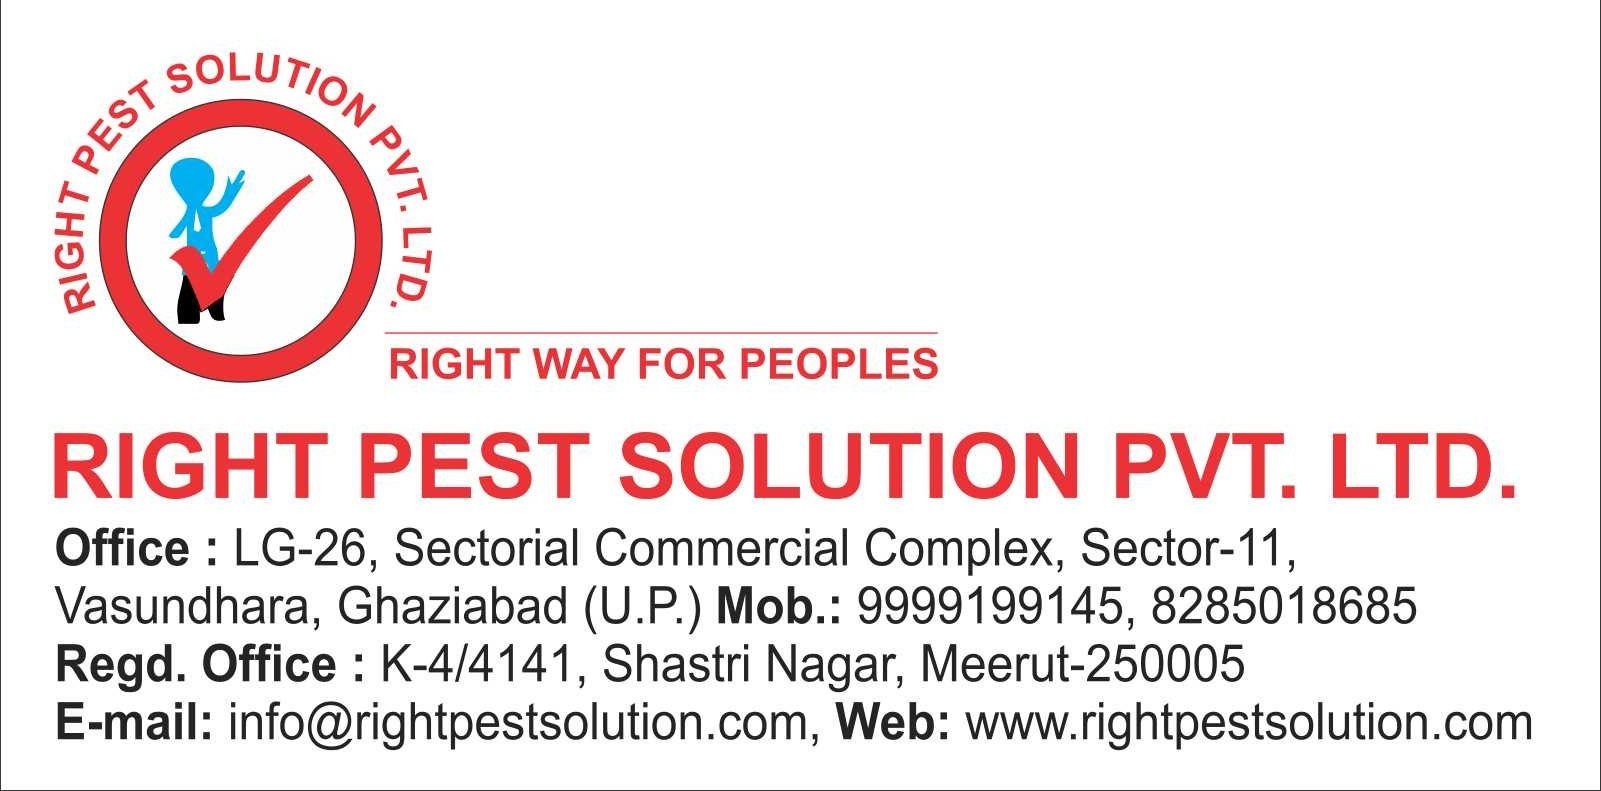 Right Pest Solution Pvt Ltd - logo